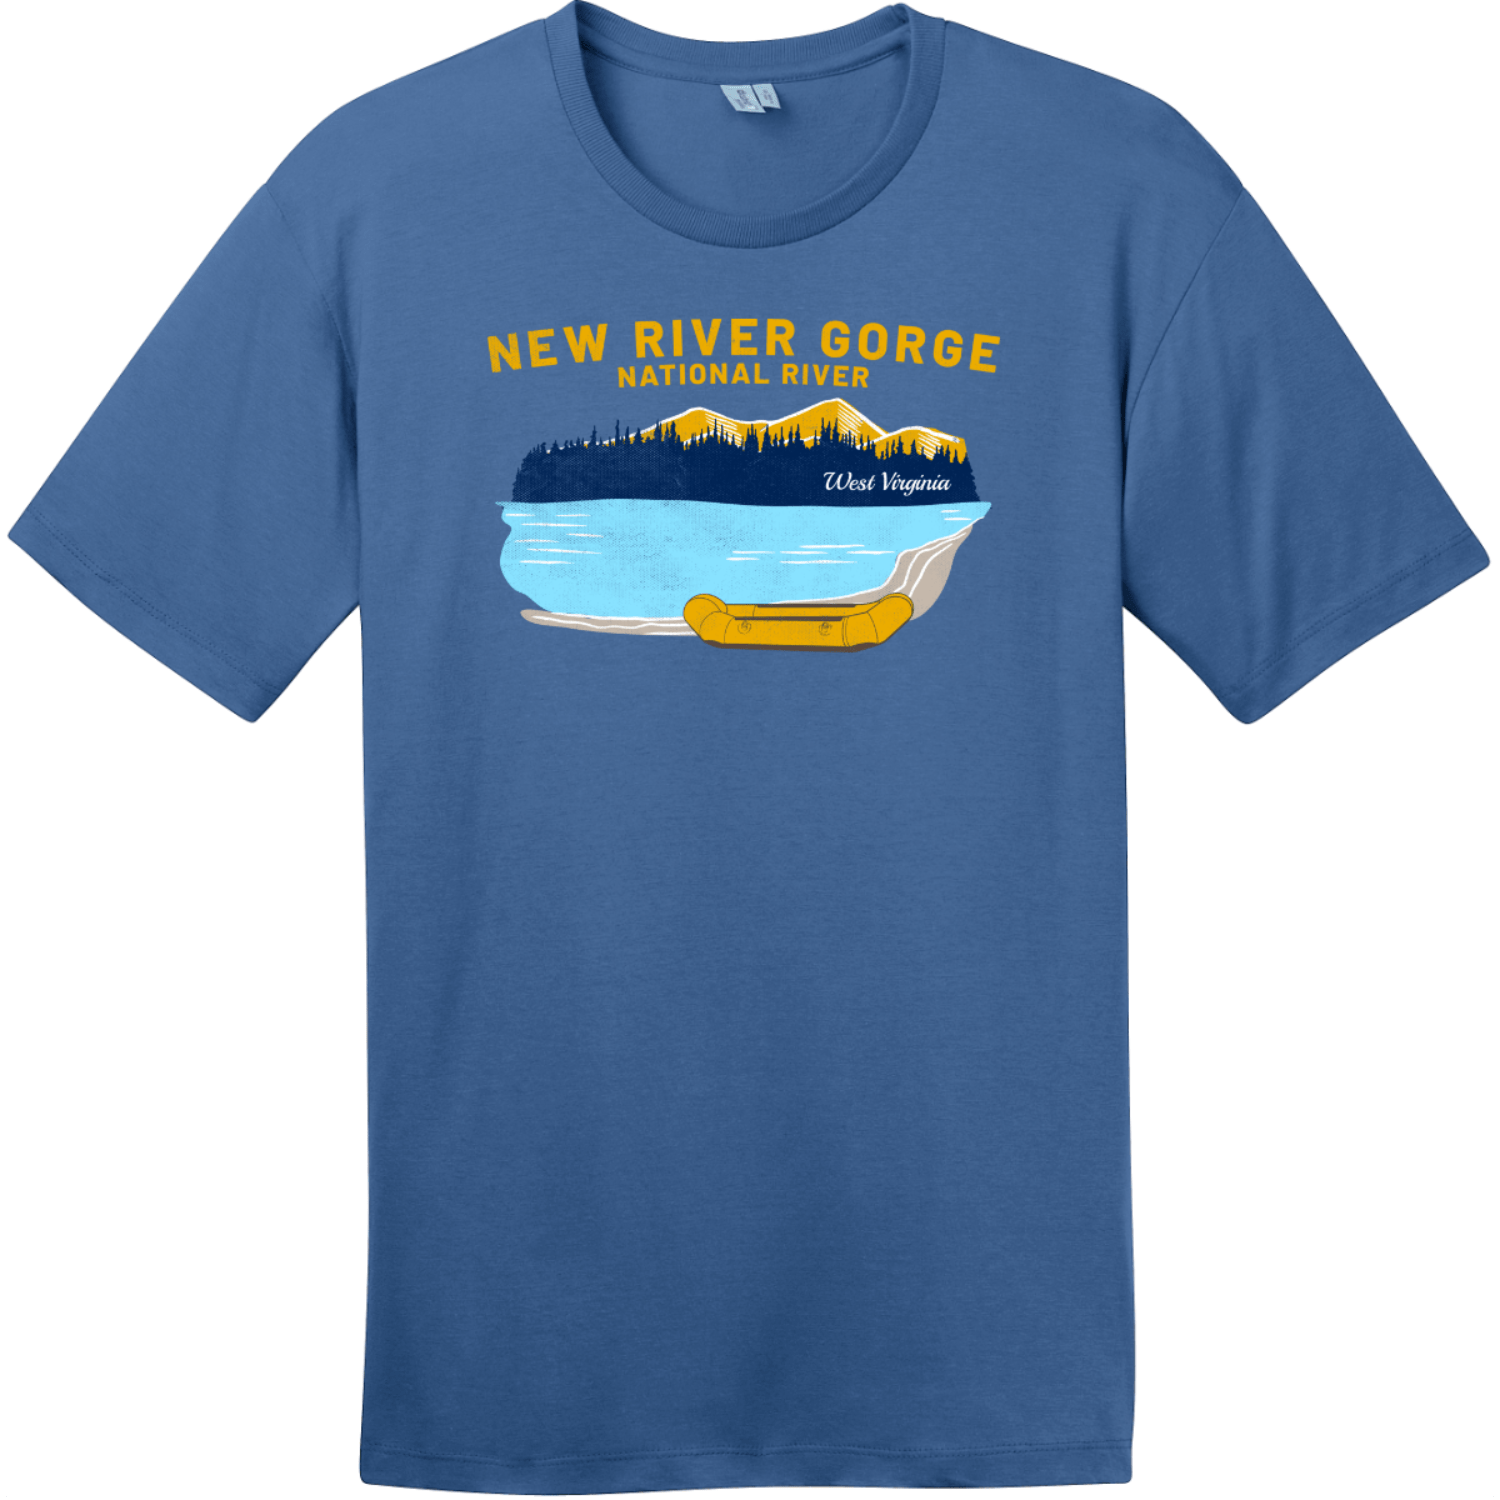 New River Gorge Rafting T-Shirt Maritime Blue District Perfect Weight Tee DT104